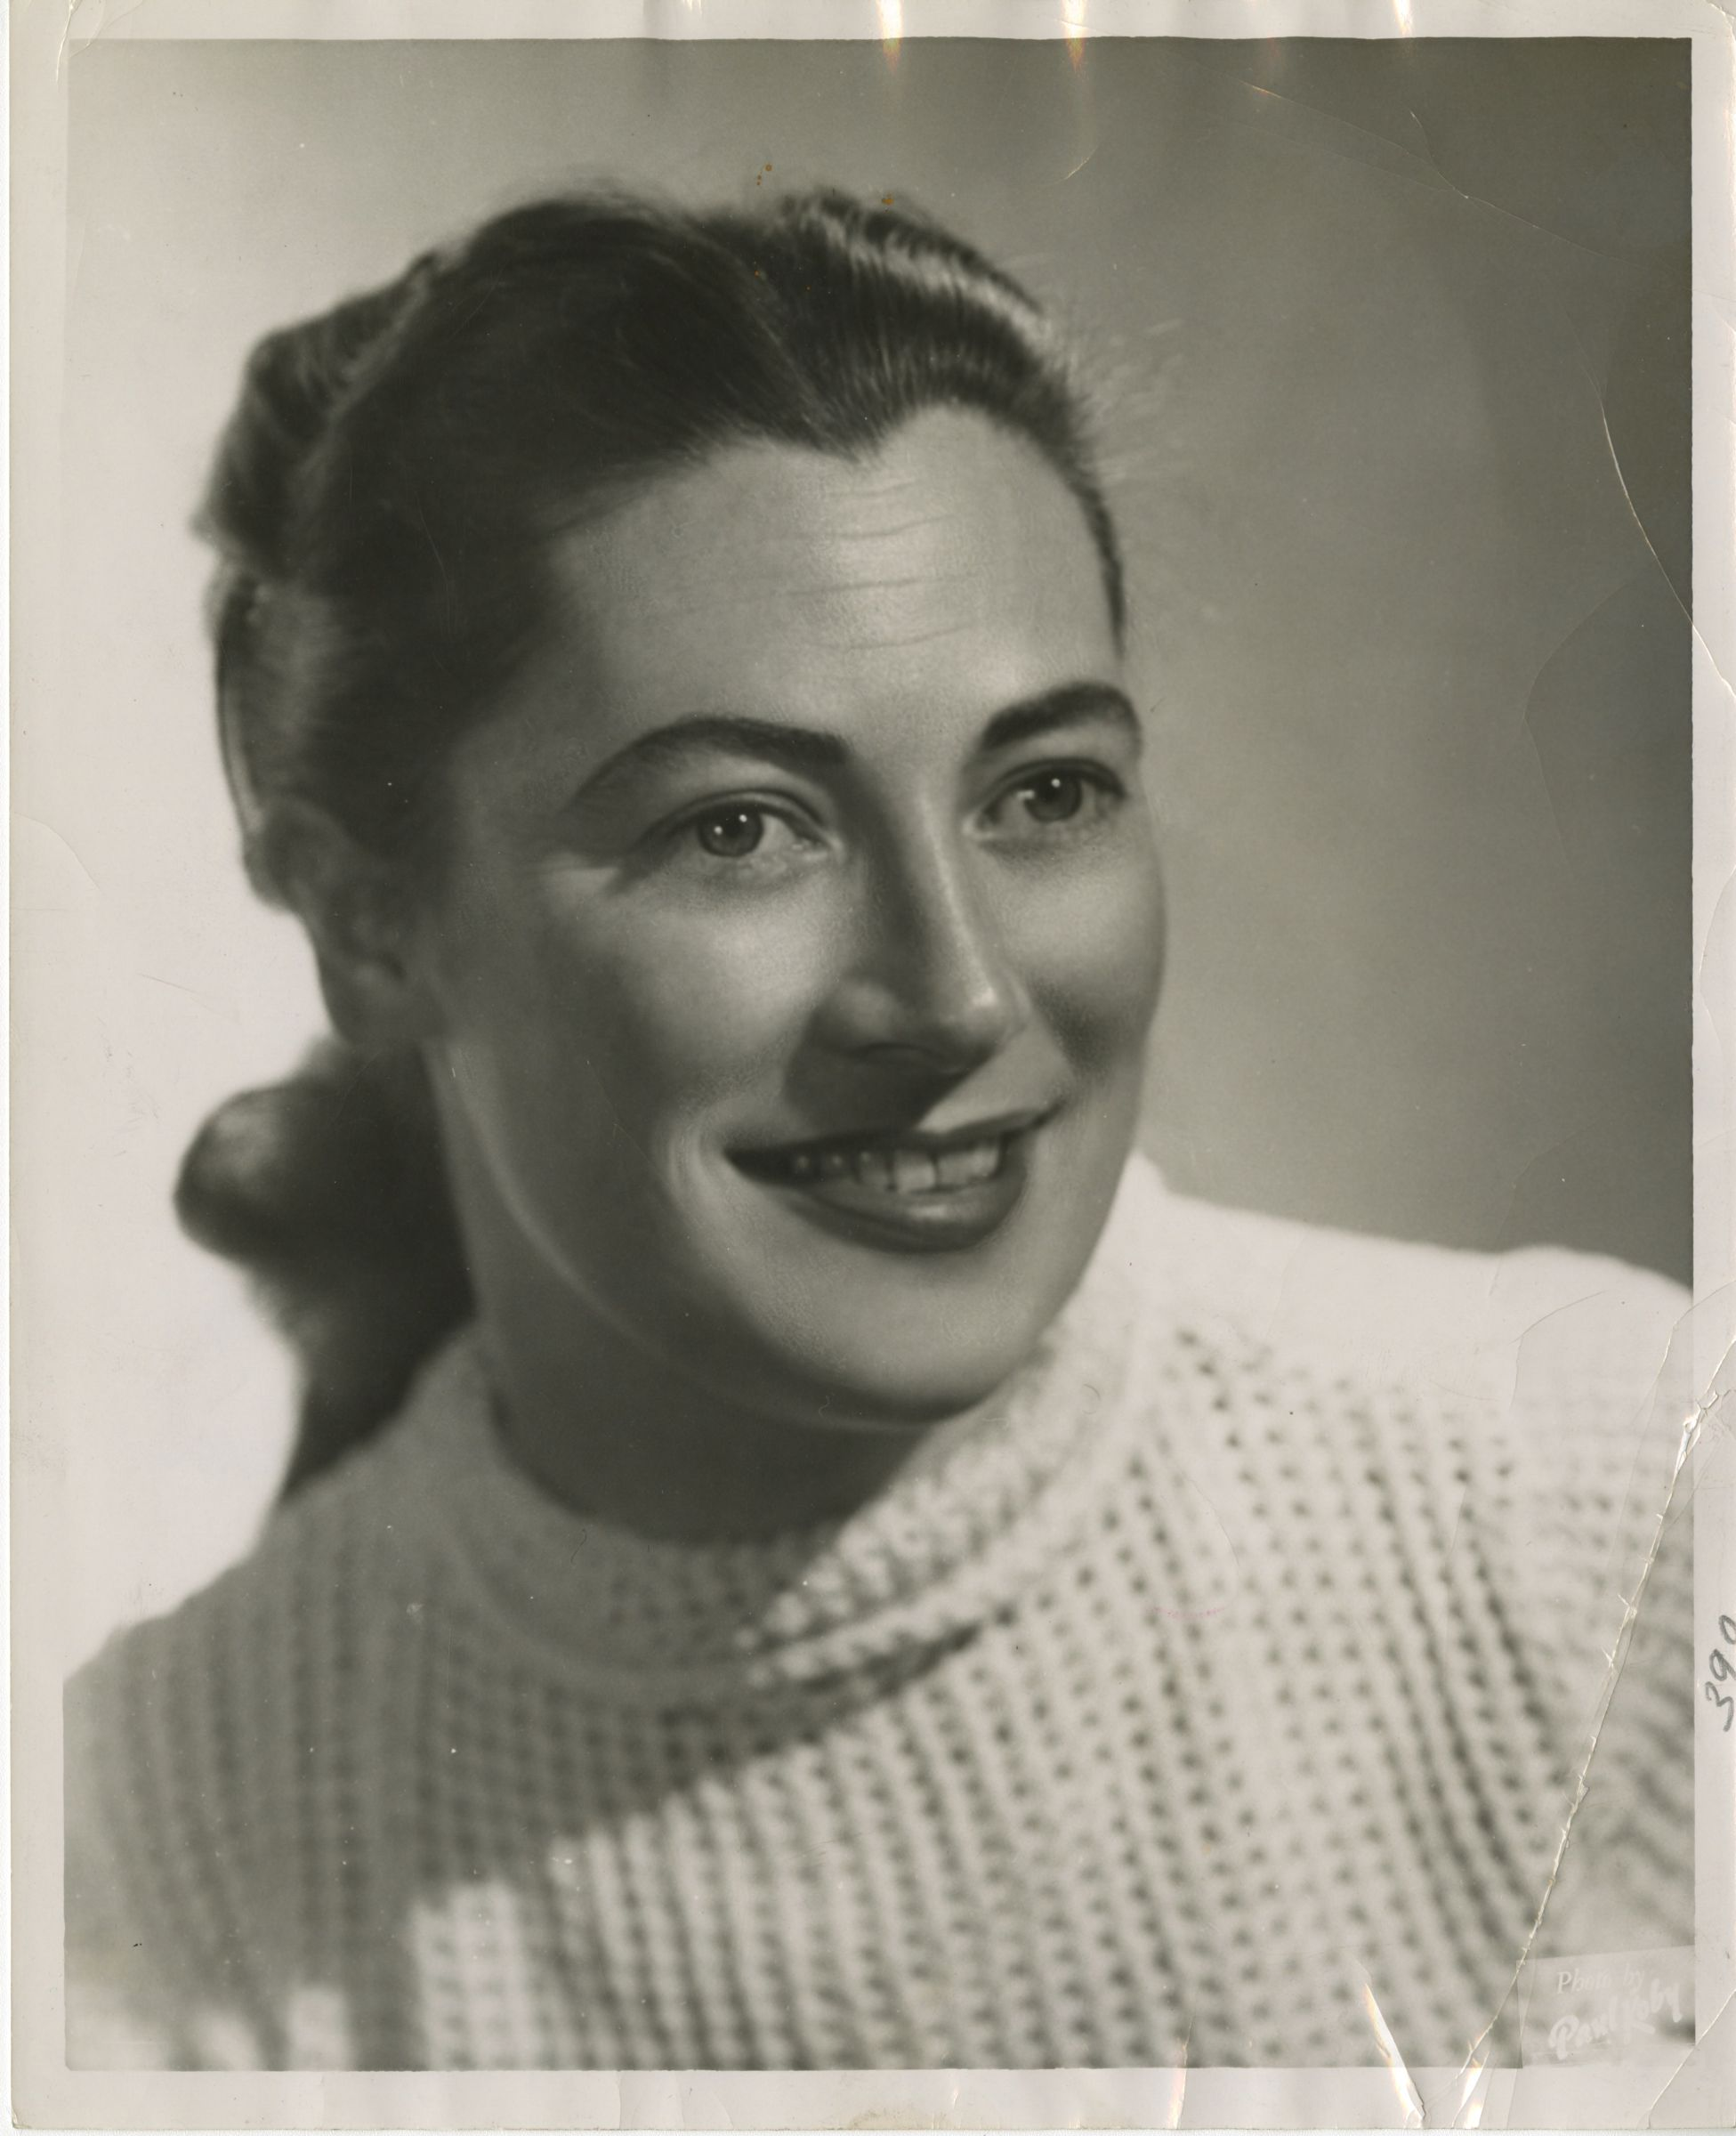 A formal portrait of Vilma R. Hunt. Black and white. She is smiling and staring off camera, wearing a white turtleneck.